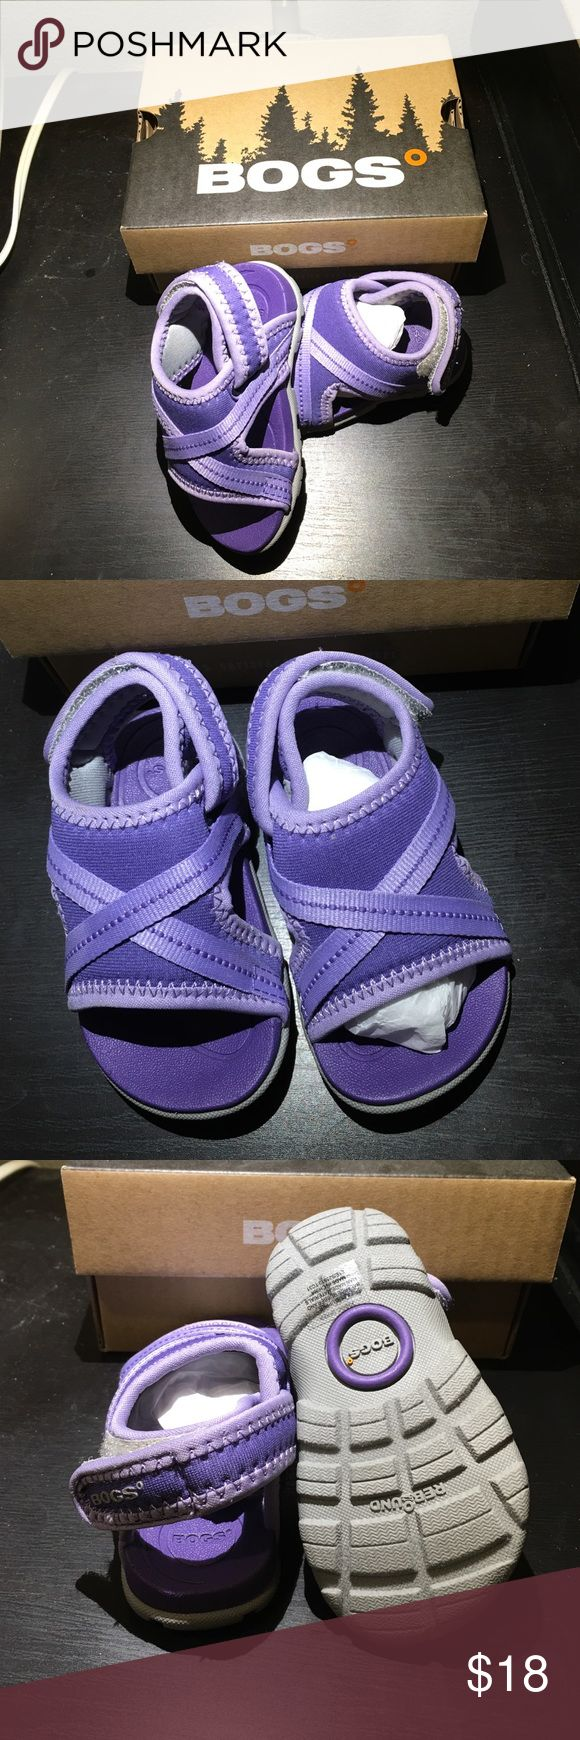 BRAND NEW! BOGS Bluefish Kids shoes Bogs Bluefish Outdoor kids Sandals with Slip On Strap Adjustable. Waterproof. Ultra comfortable and offer a bit more coverage than other sandals. Bogs Shoes Sandals & Flip Flops